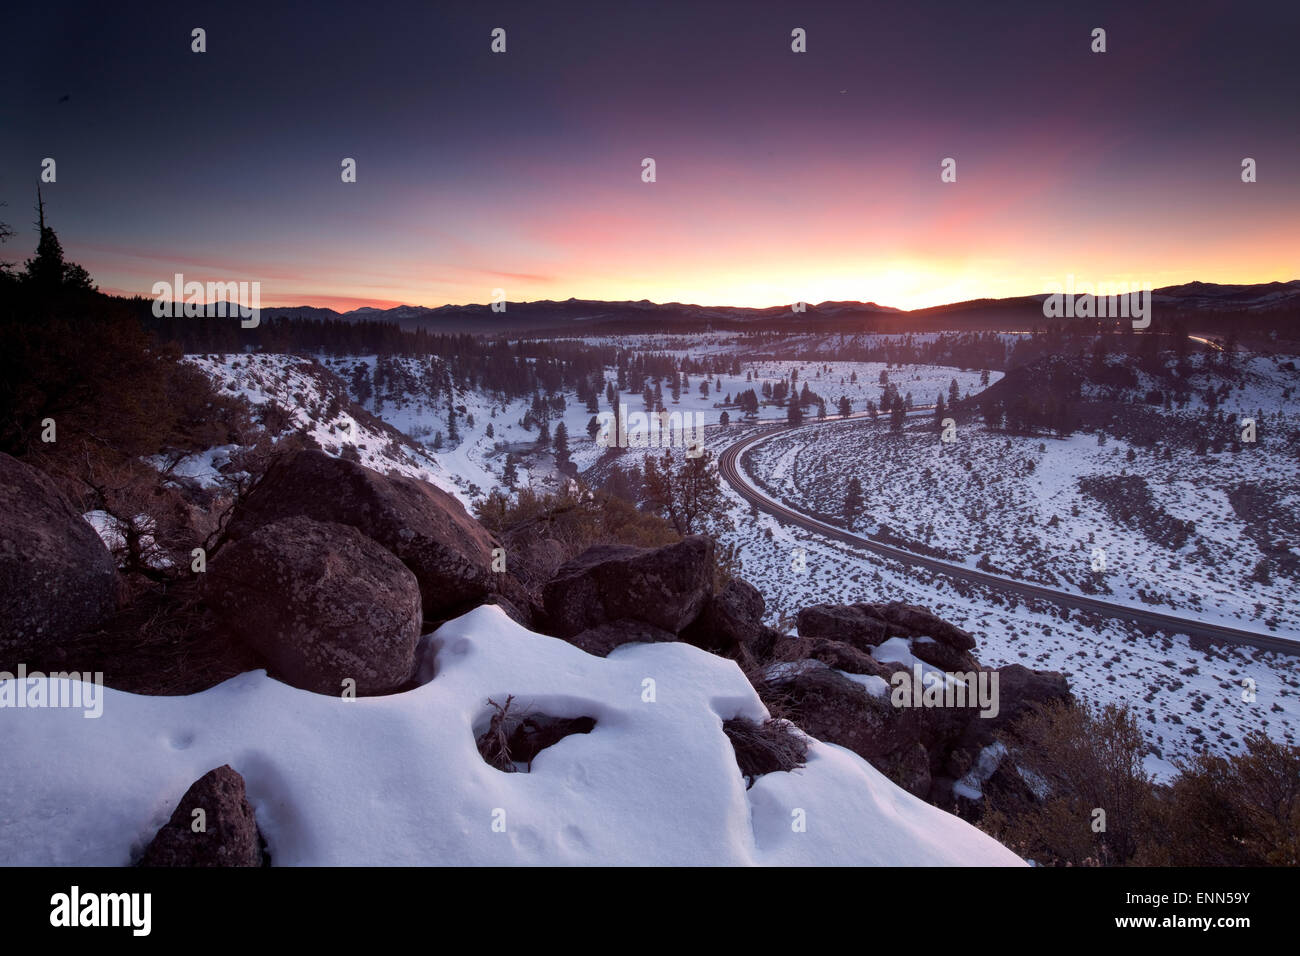 Glenshire sunset at the Union Pacific railroad, Truckee - Stock Image